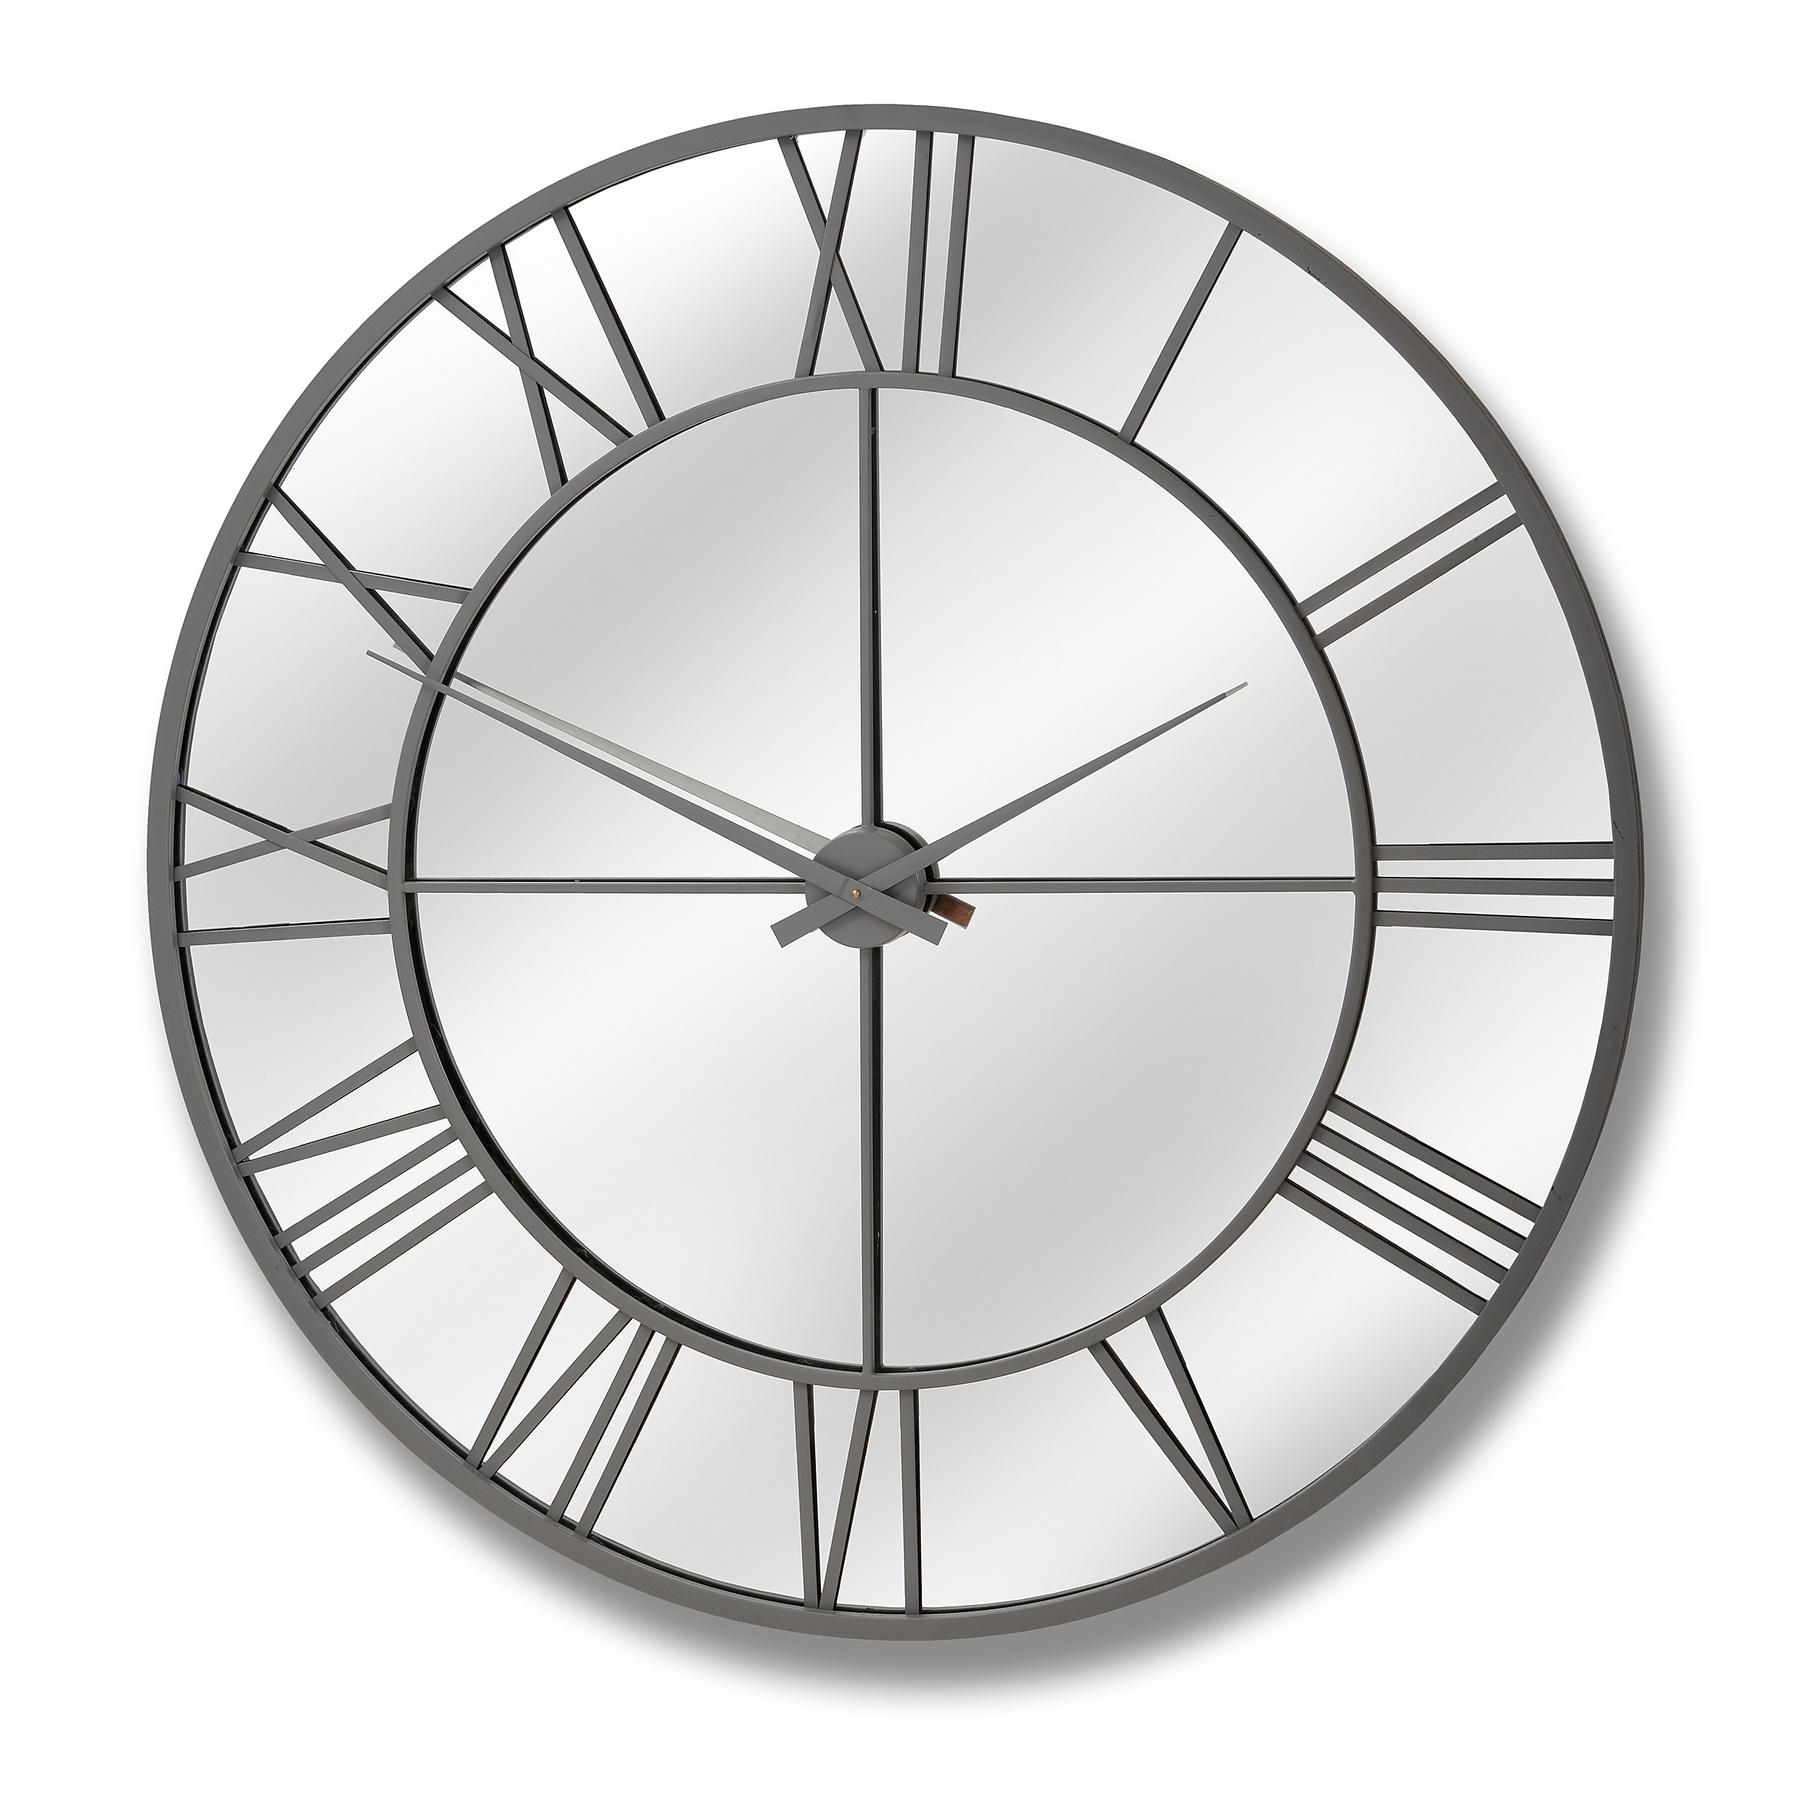 Outdoor Mirrored Wall Clock